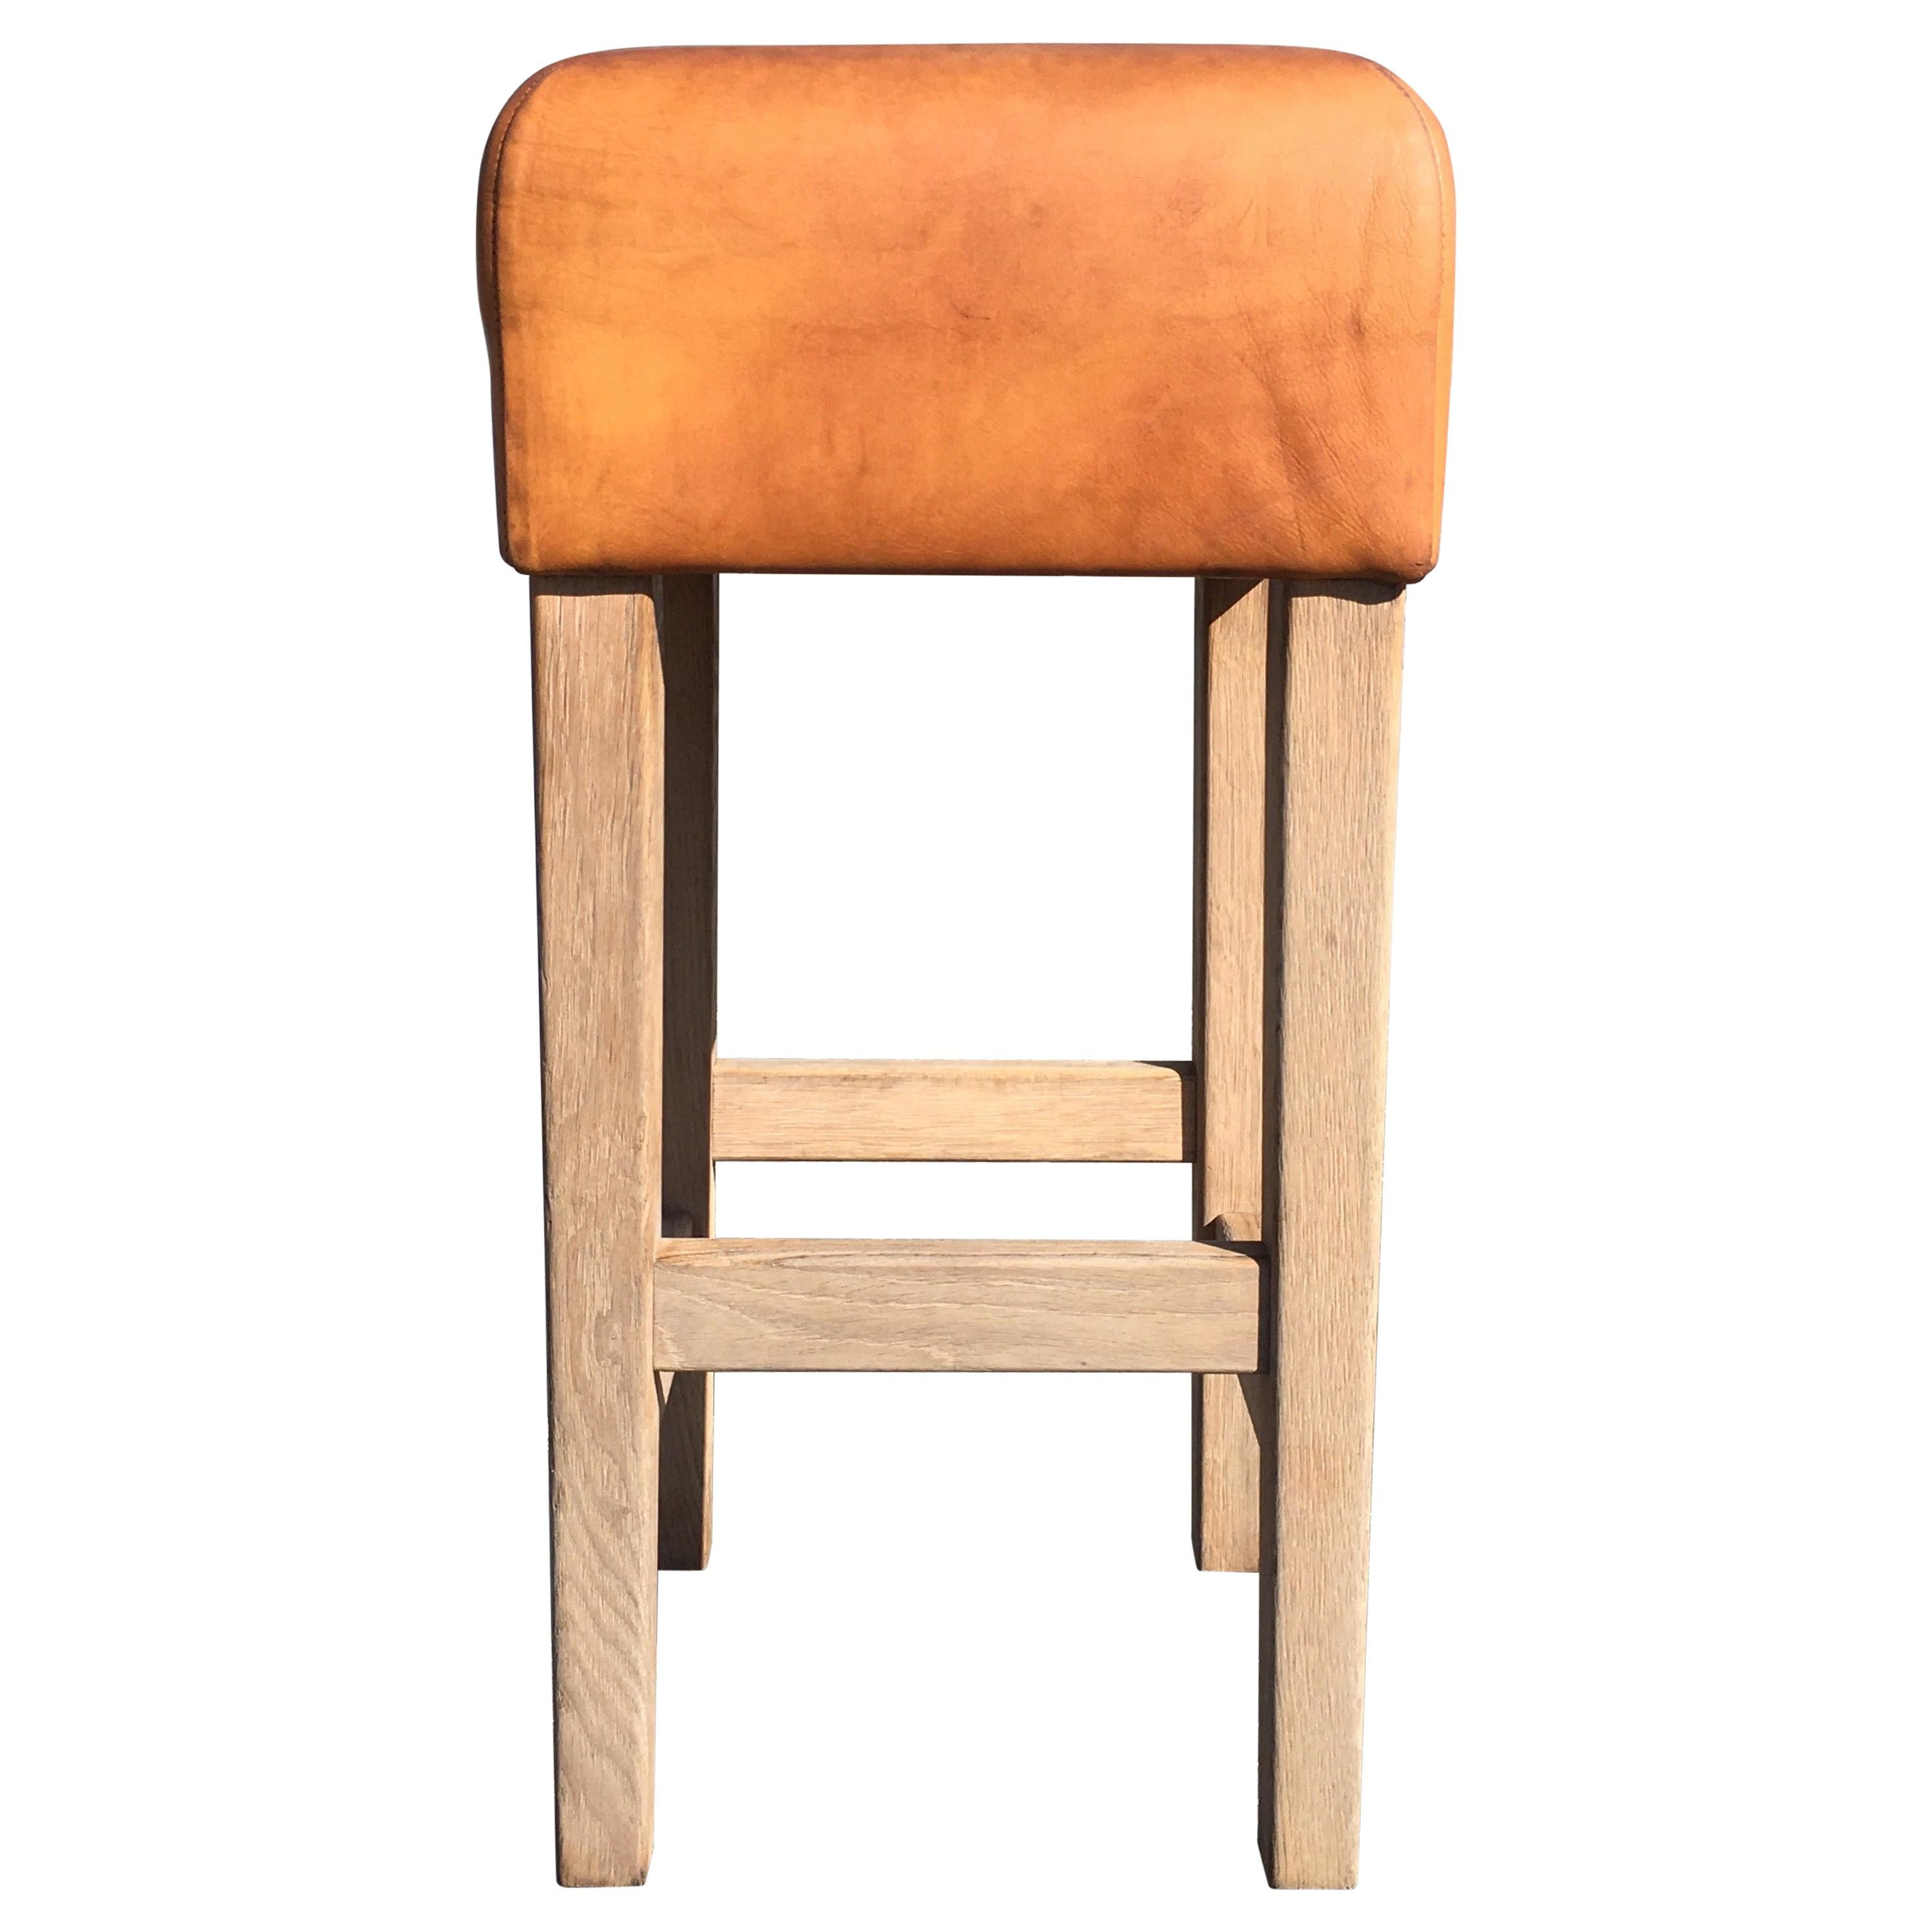 Marvelous Leather Bar Stools 469 For Sale On 1Stdibs Forskolin Free Trial Chair Design Images Forskolin Free Trialorg